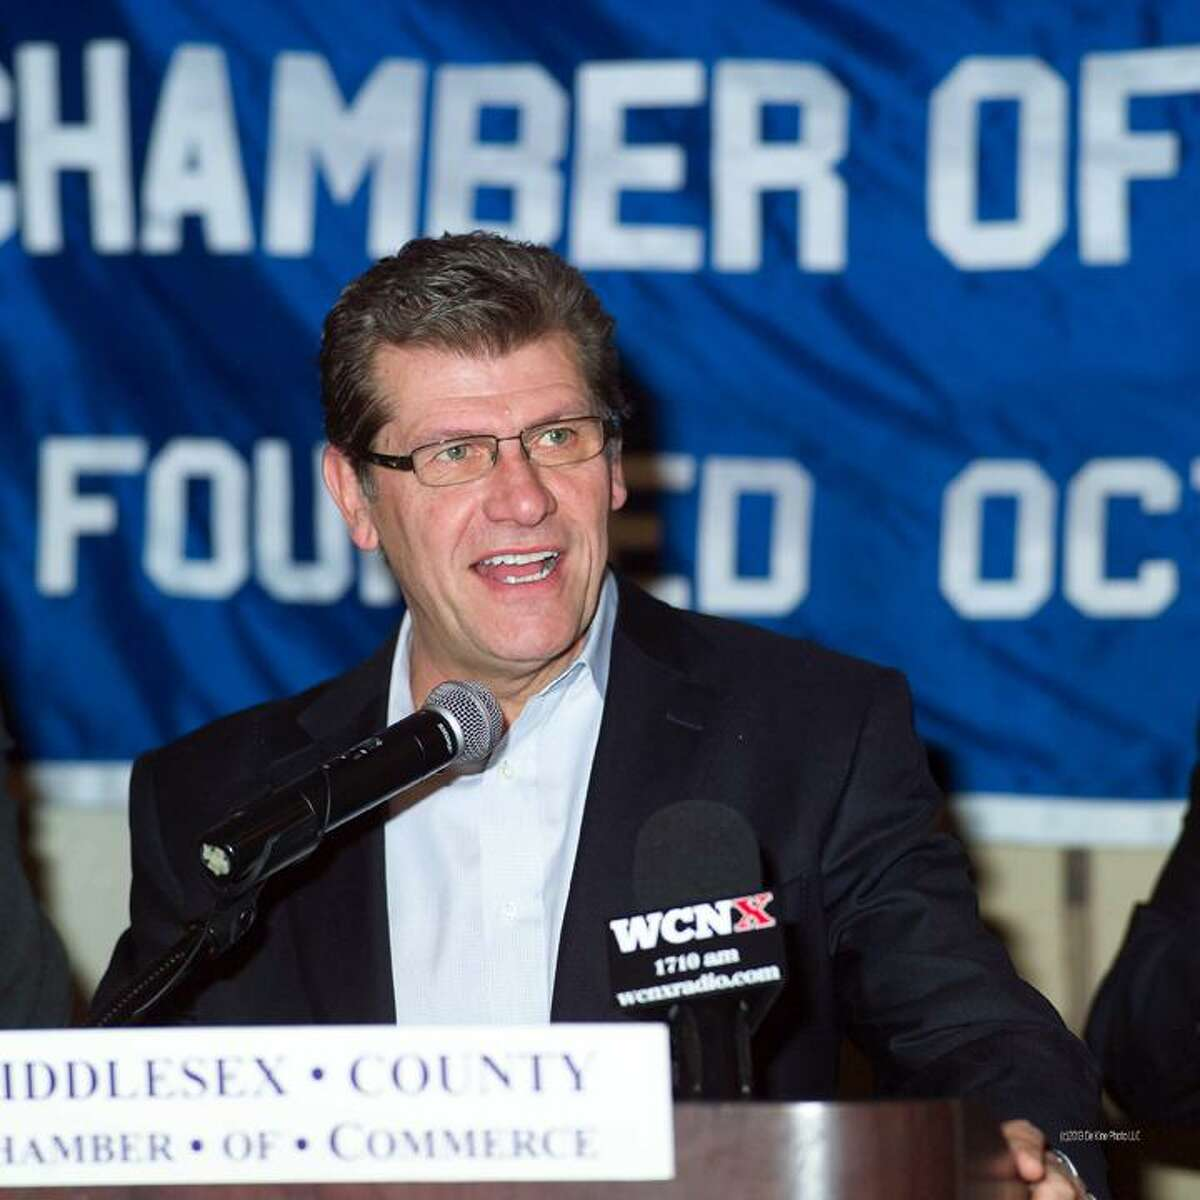 Courtesy, De Kine Photo LLC UConn women's basketball coach Geno Auriemma speaks at the Middlesex Chamber of Commerce member breakfast Monday at the Crowne Plaza Hotel in Cromwell.